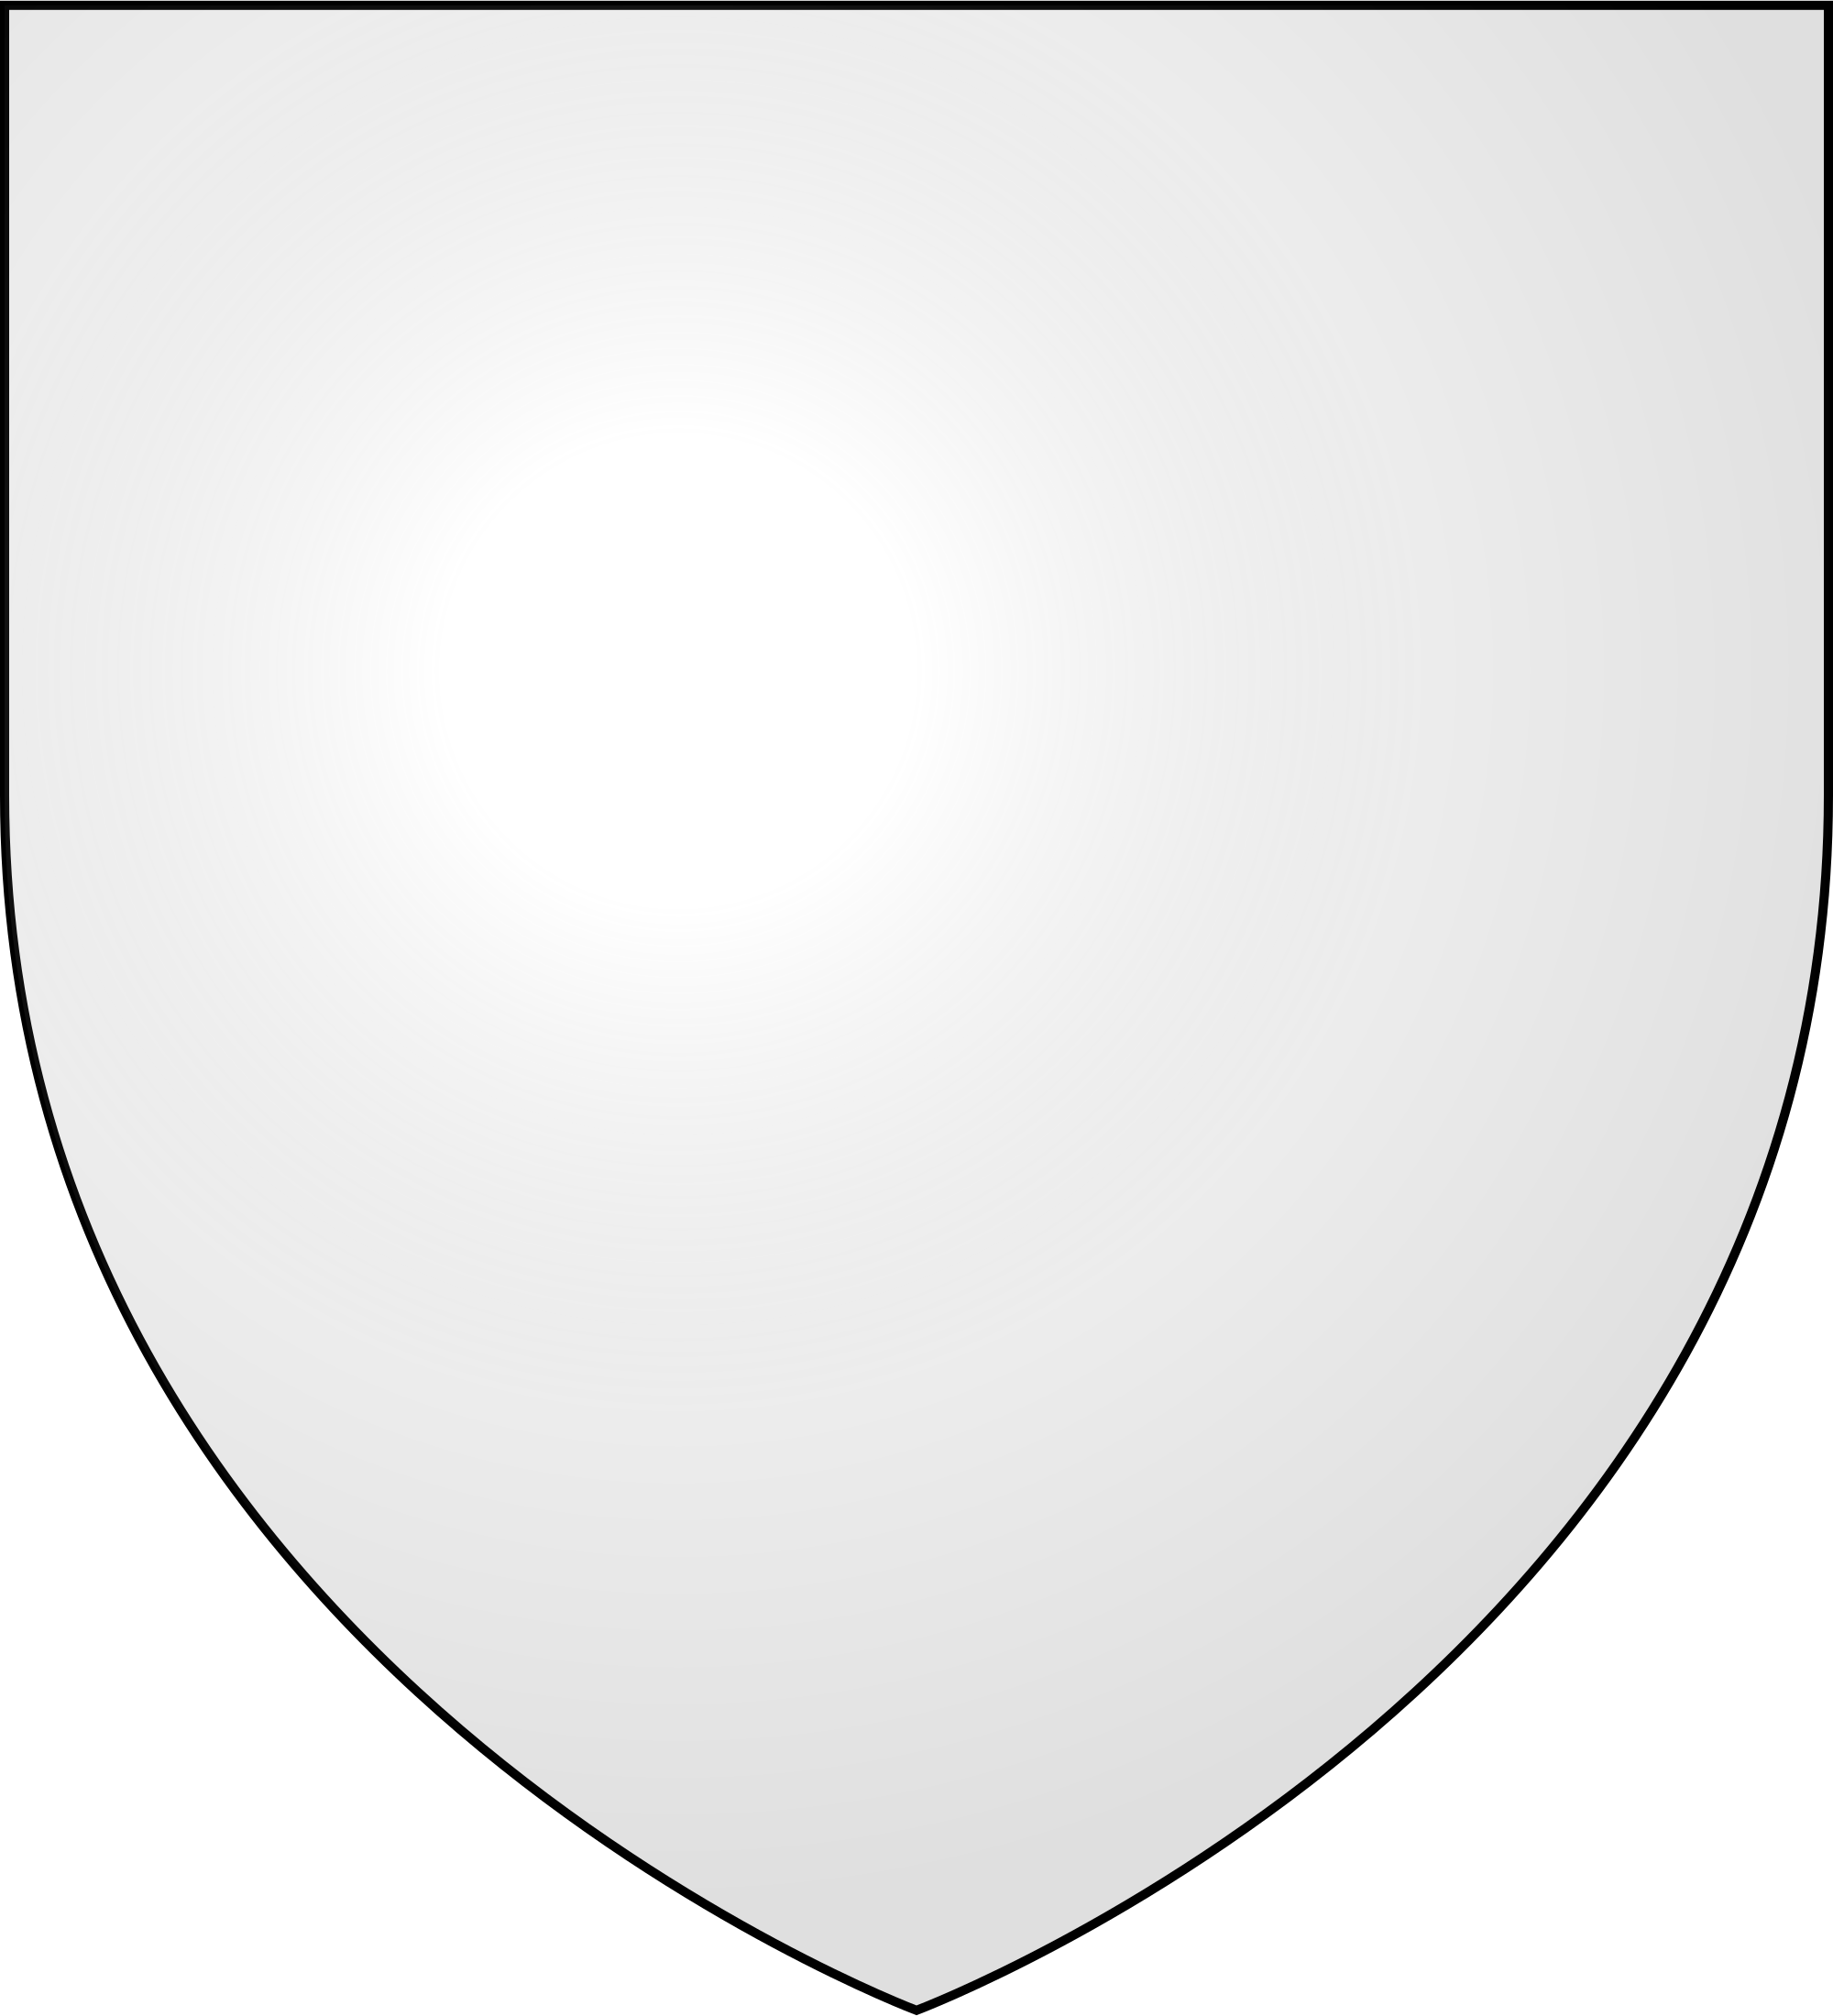 Blank shield png. File with border svg